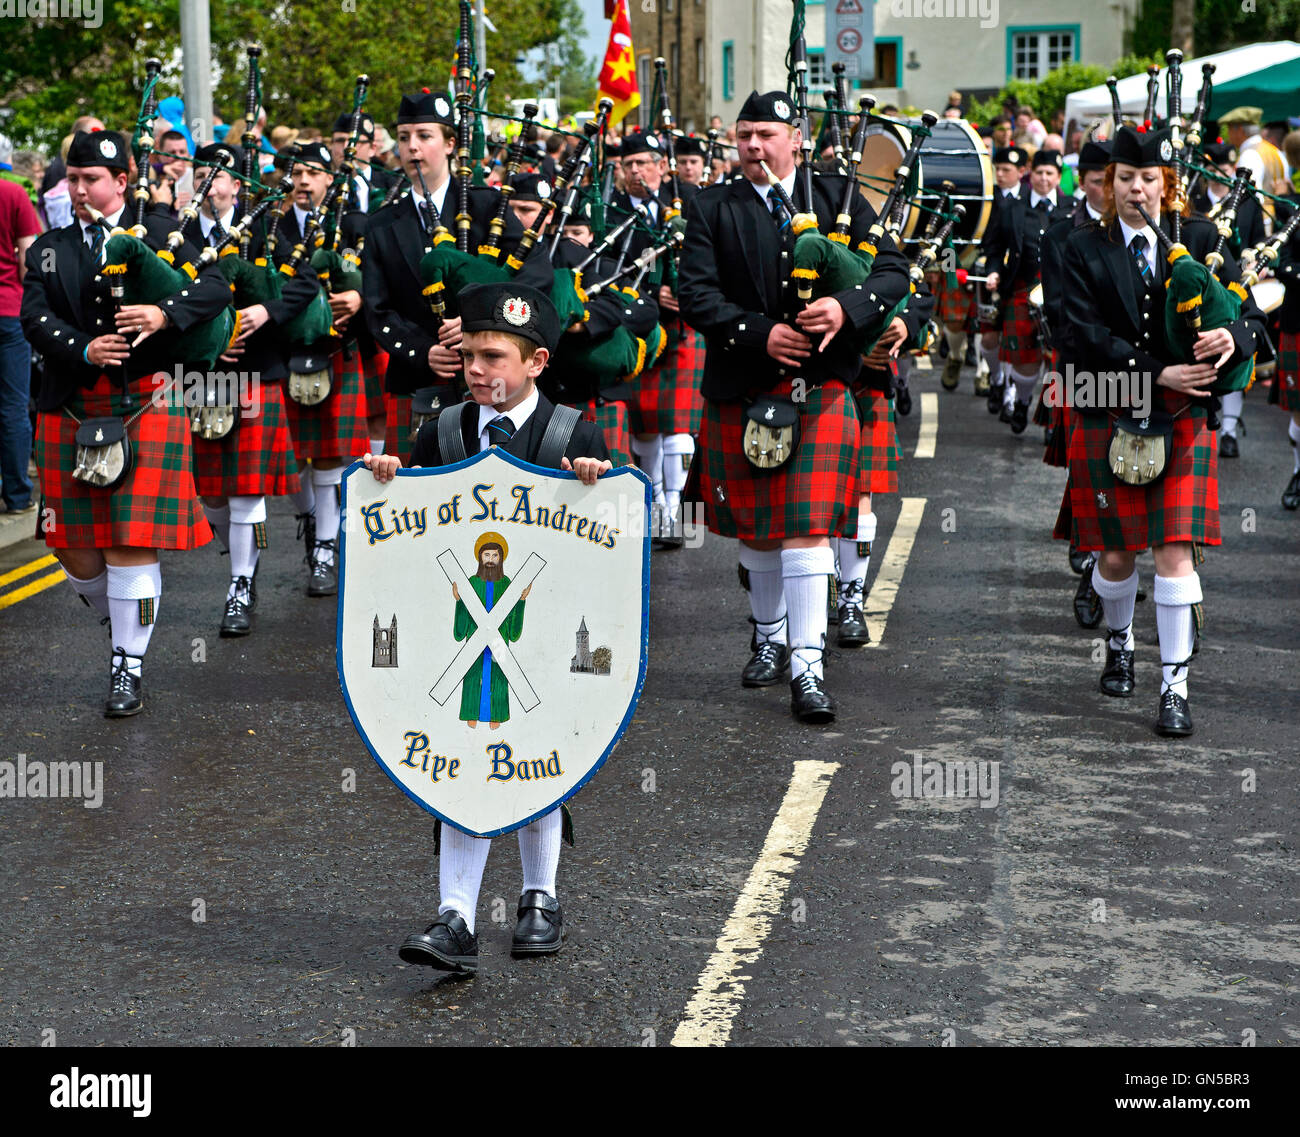 Bagpipe players of the City of St Andrews Pipe Band, Ceres, Scotland, United Kingdom - Stock Image